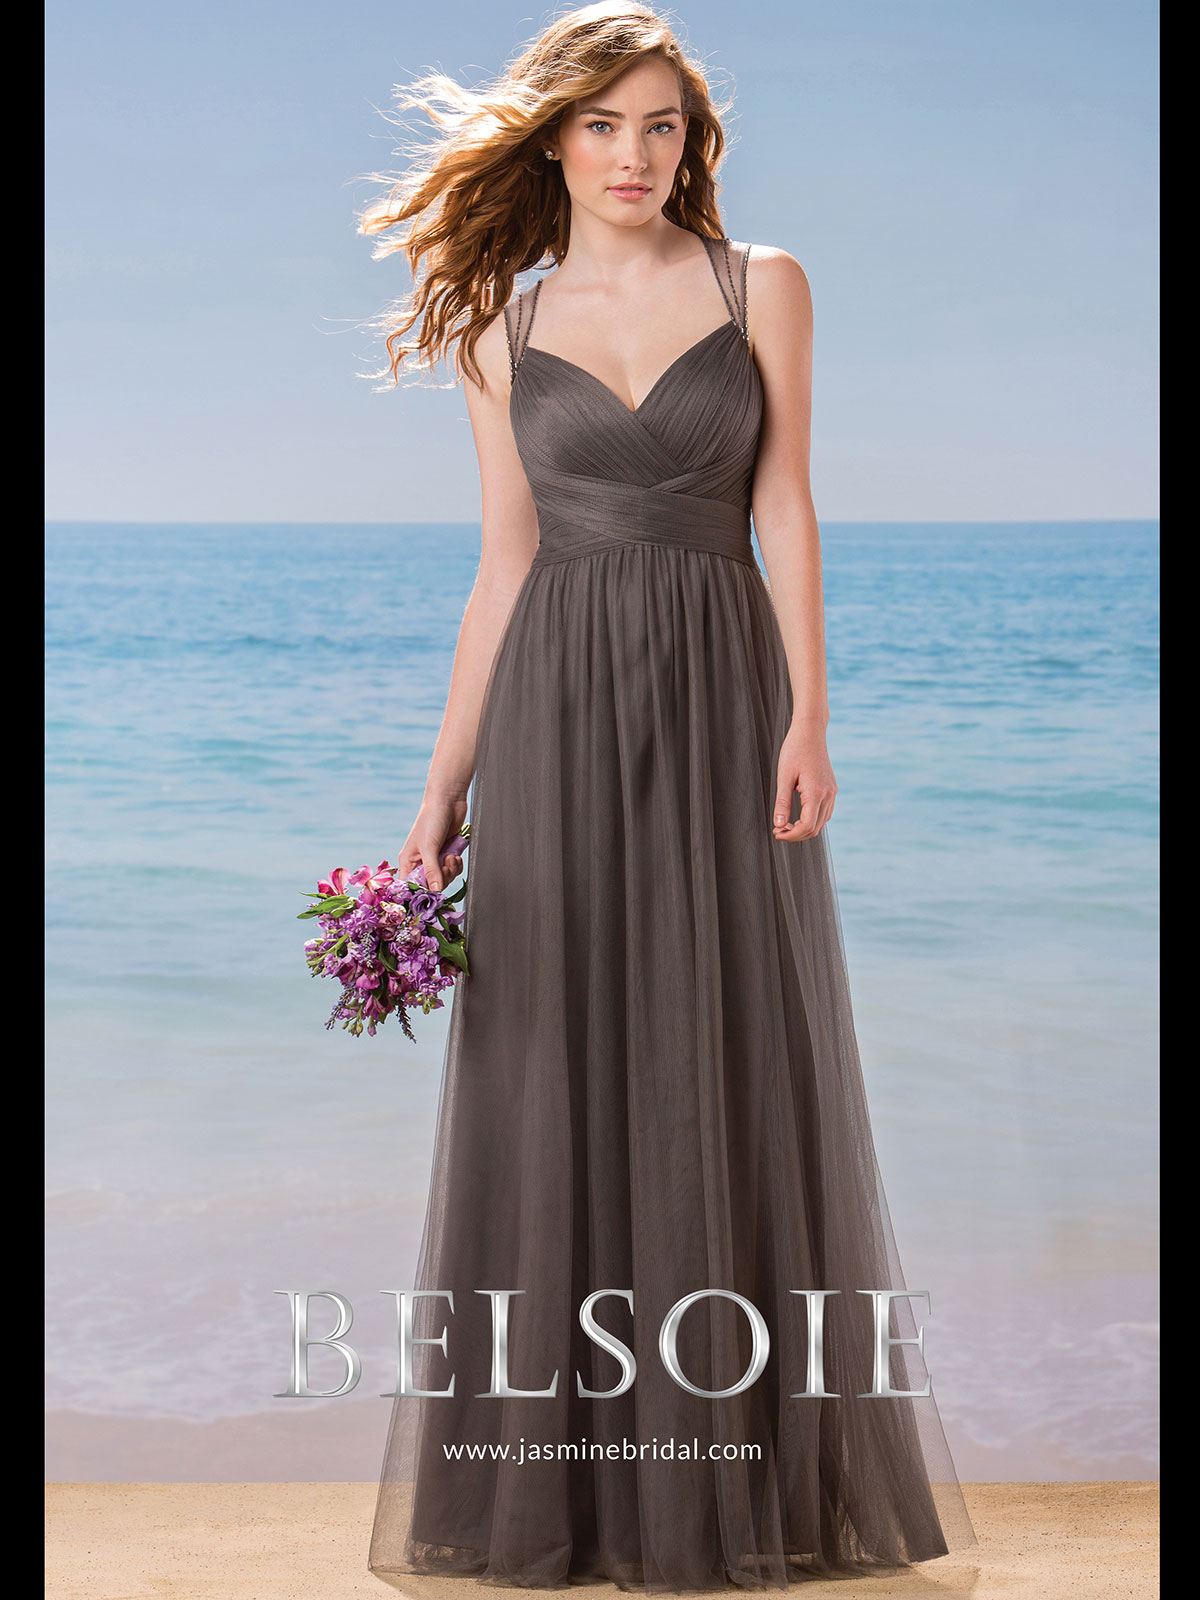 Belsoie l184002 sweetheart soft tulle a line bridesmaid dress belsoie l184002 sweetheart pleated bridesmaid dress ombrellifo Choice Image